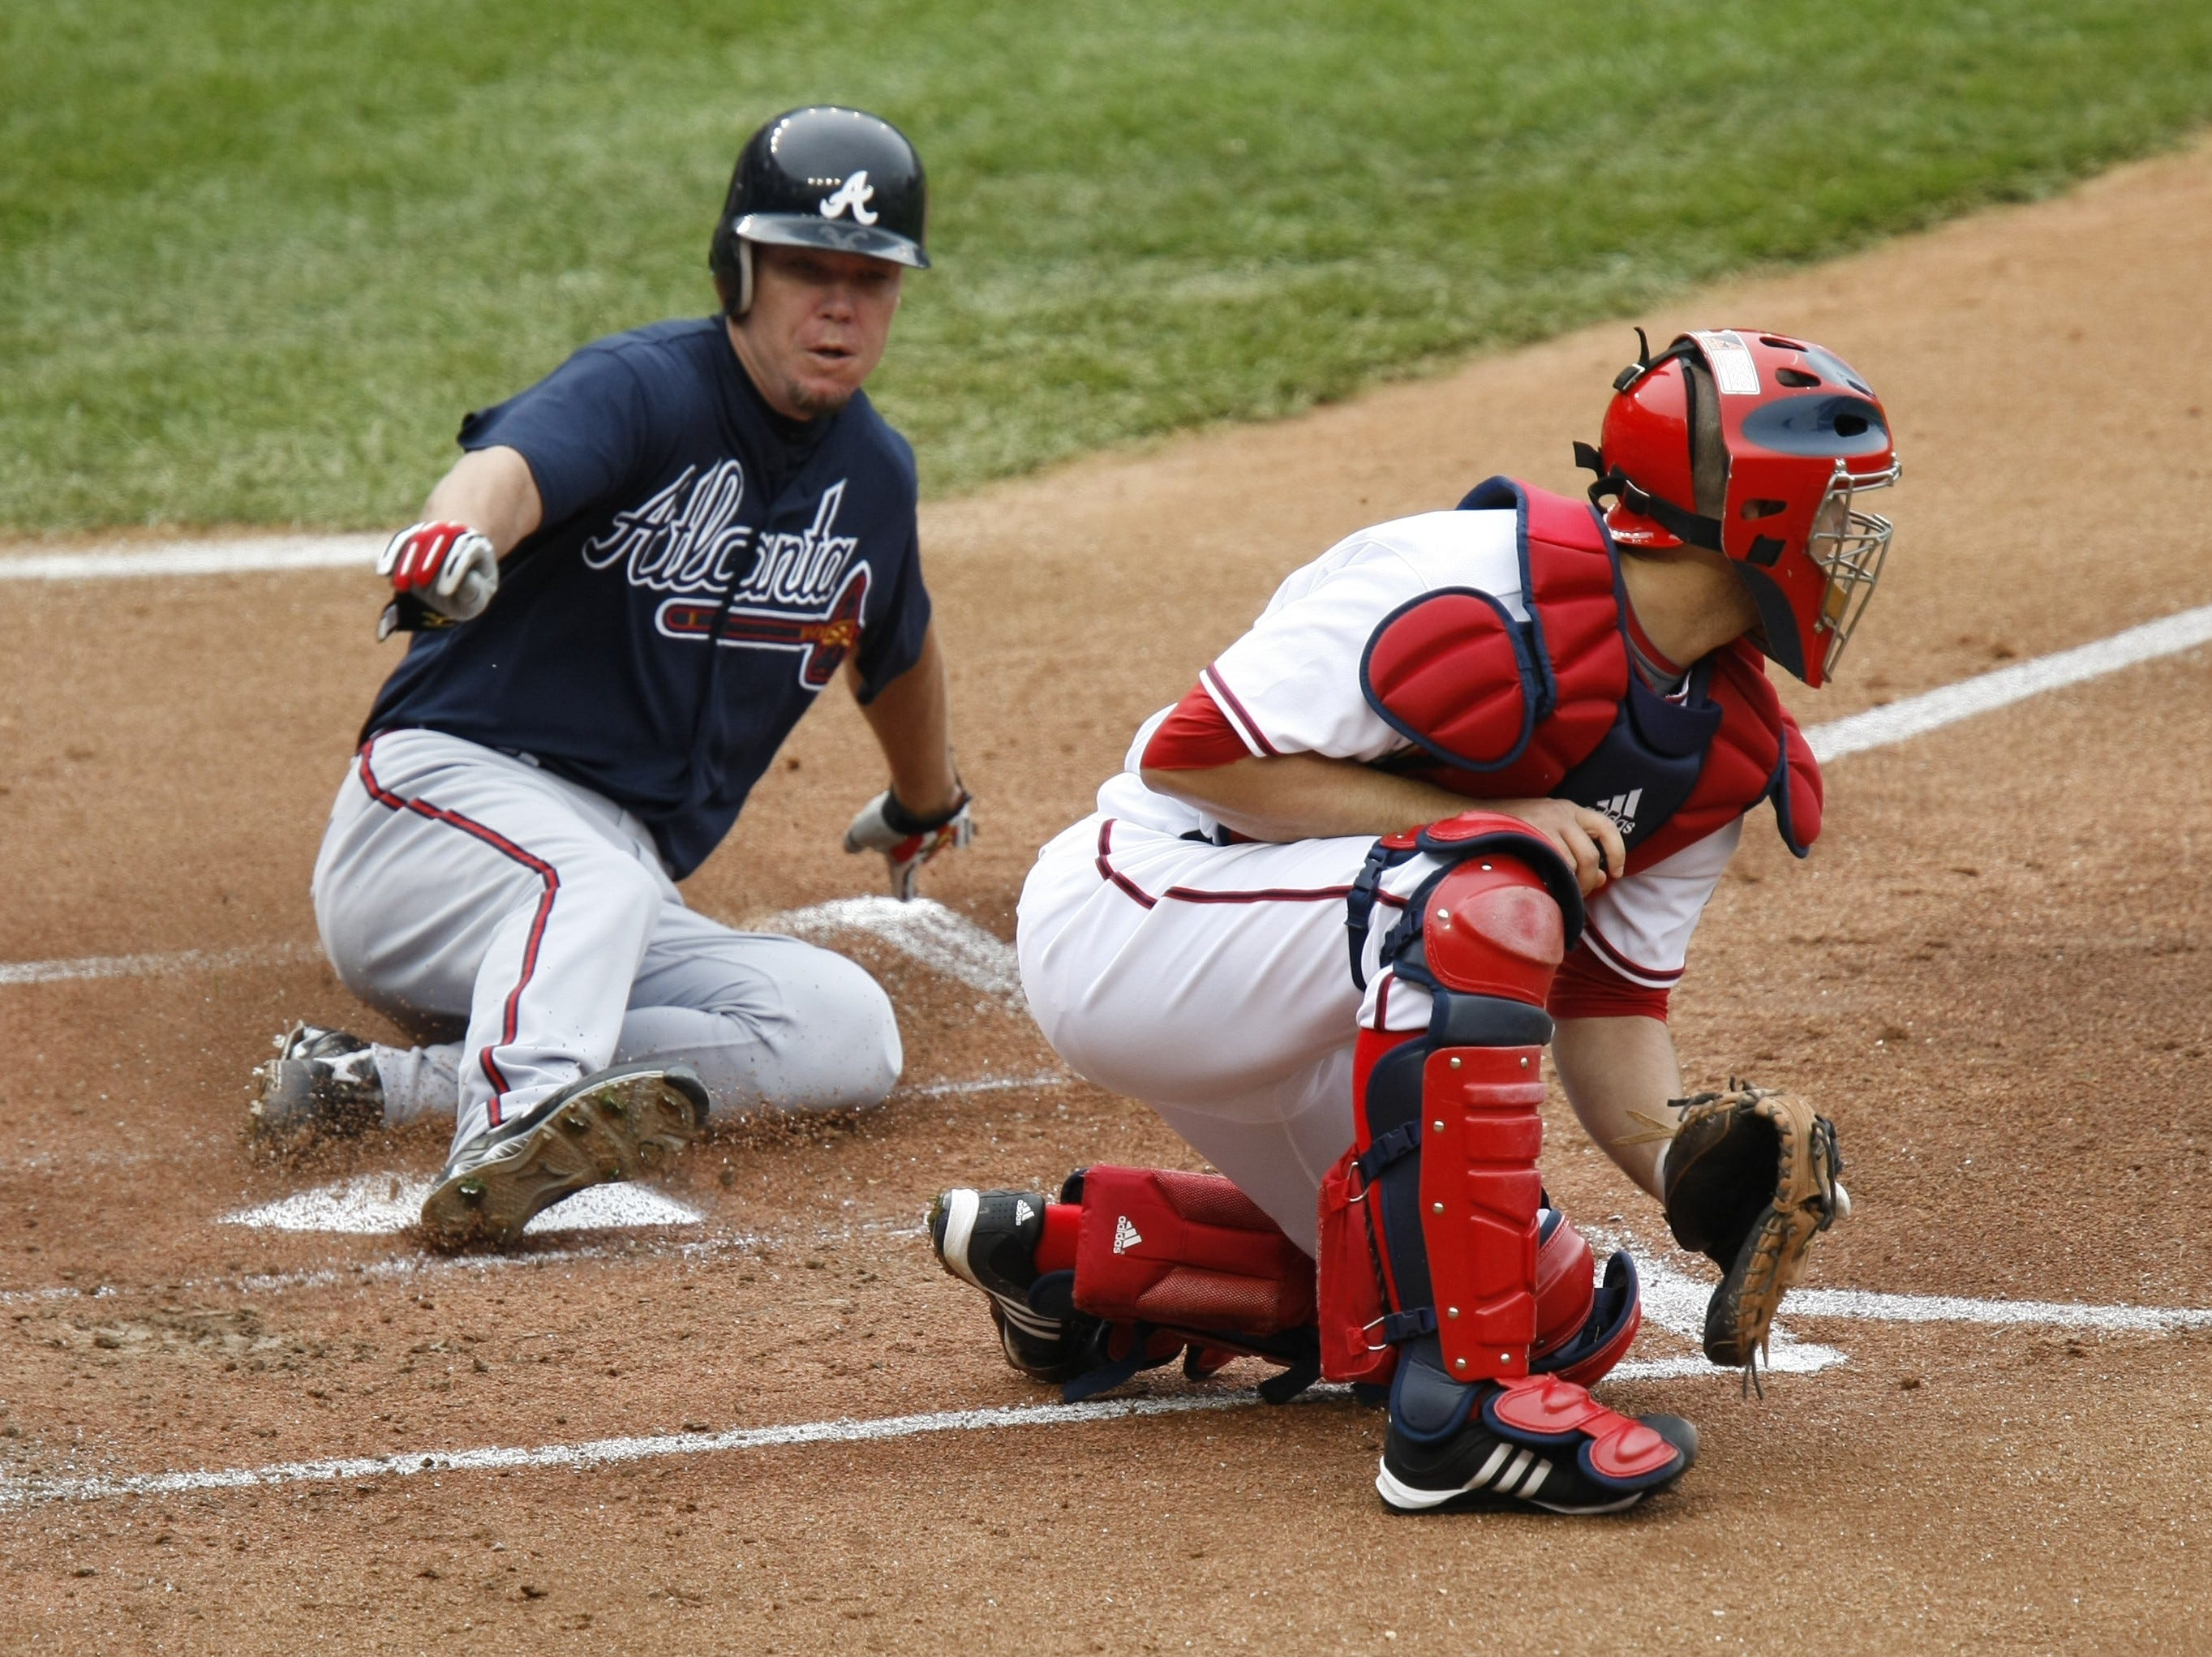 Atlanta Braves' Chipper Jones, left, slides safely into home plate on a two-run single by Atlanta Braves' Yunel Escobar as Washington Nationals catcher Josh Bard, right, waits for the ball during the first inning of a baseball game, Saturday, Sept. 26, 2009, in Washington. Bard is a native of Ithaca, NY.